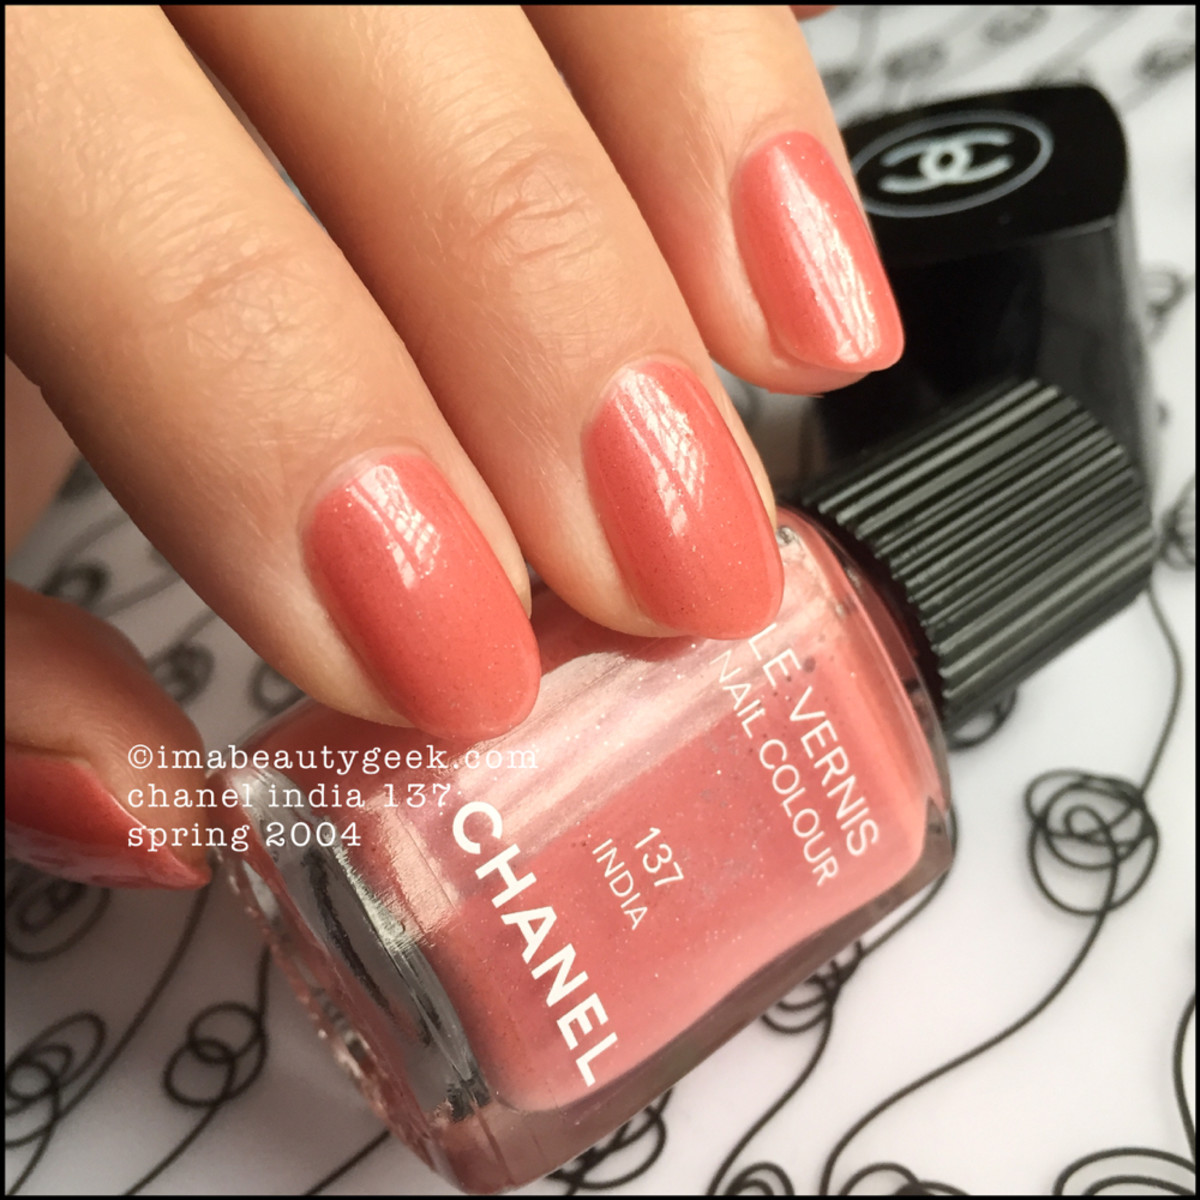 Chanel India 137 Le Vernis Nail Colour